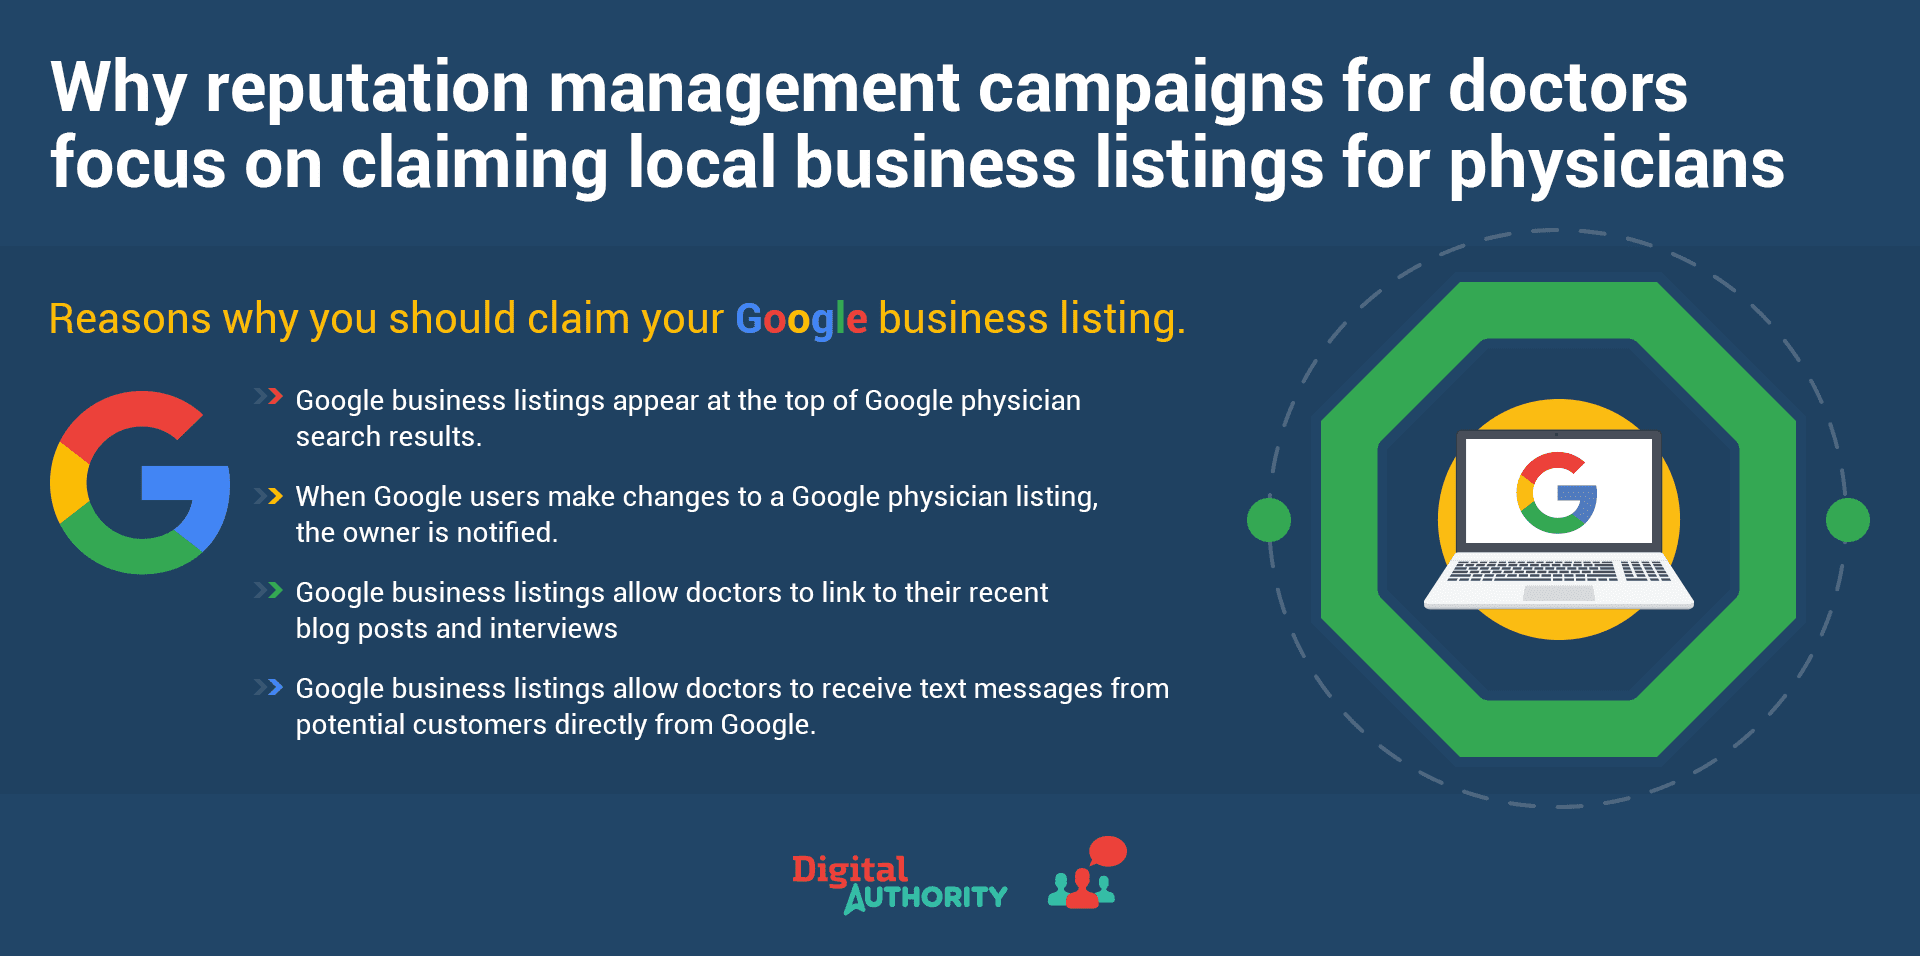 Graphic explaining why reputation management campaigns for doctors focus on claiming local business listings for physicians